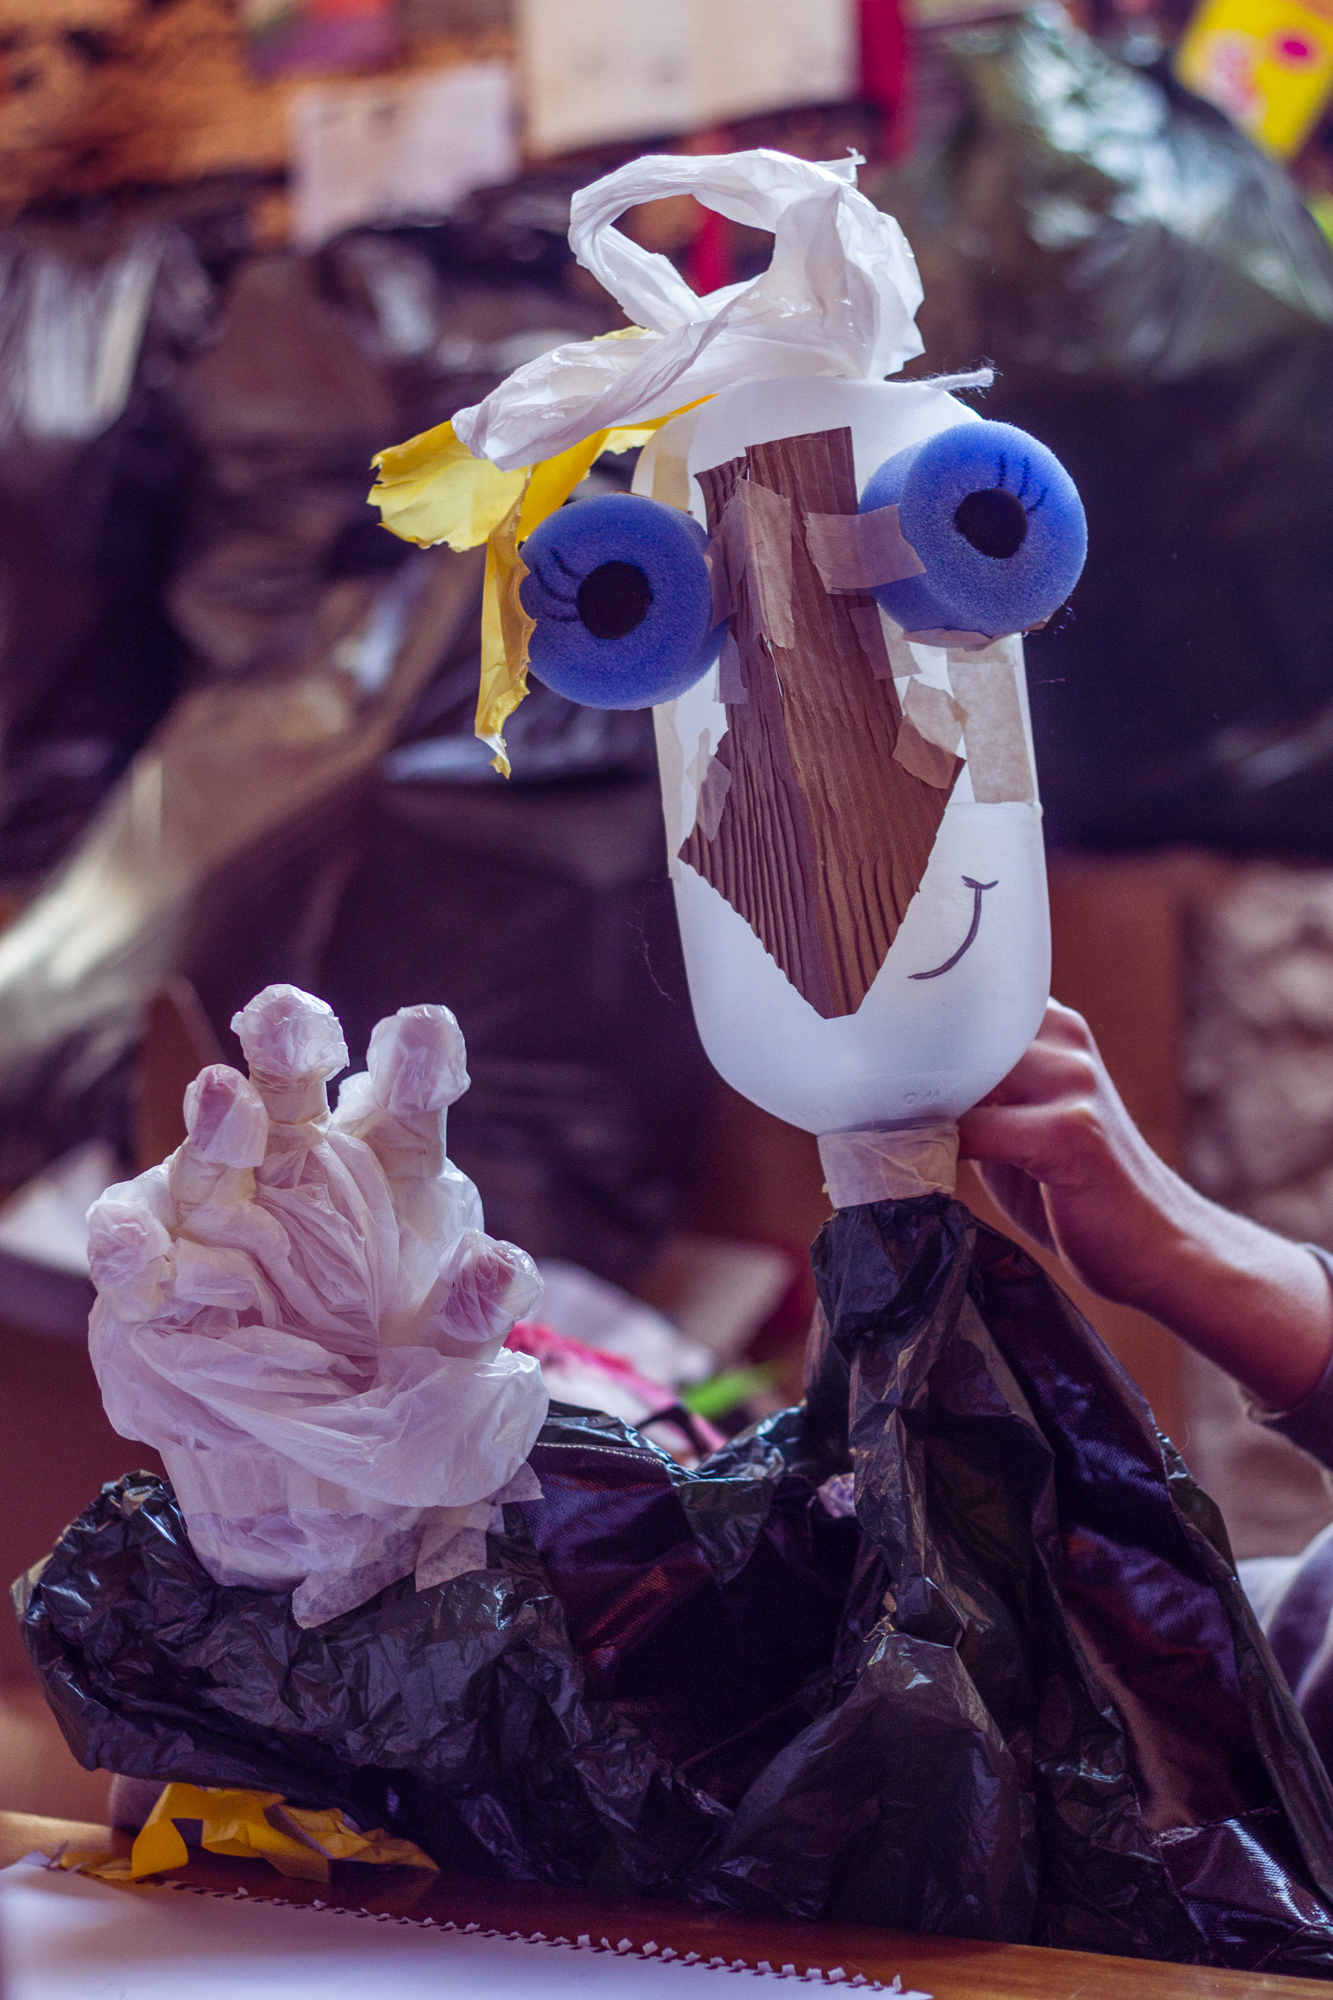 Trash Puppets Family WorkshopOther courses you may be interested in